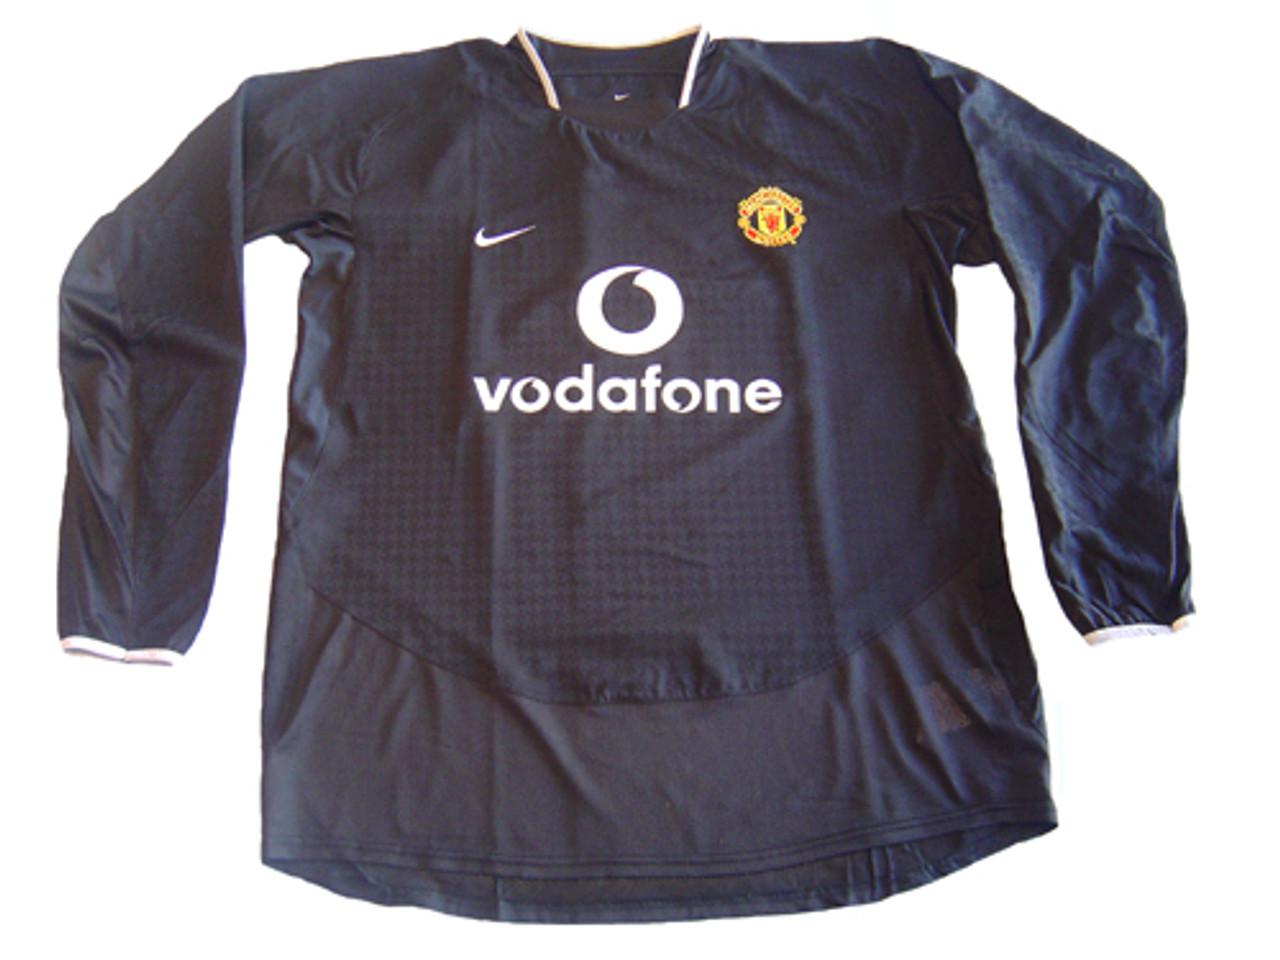 outlet store b51a1 655e0 NIKE MANCHESTER UNITED 2005 AWAY L/S JERSEY BLACK